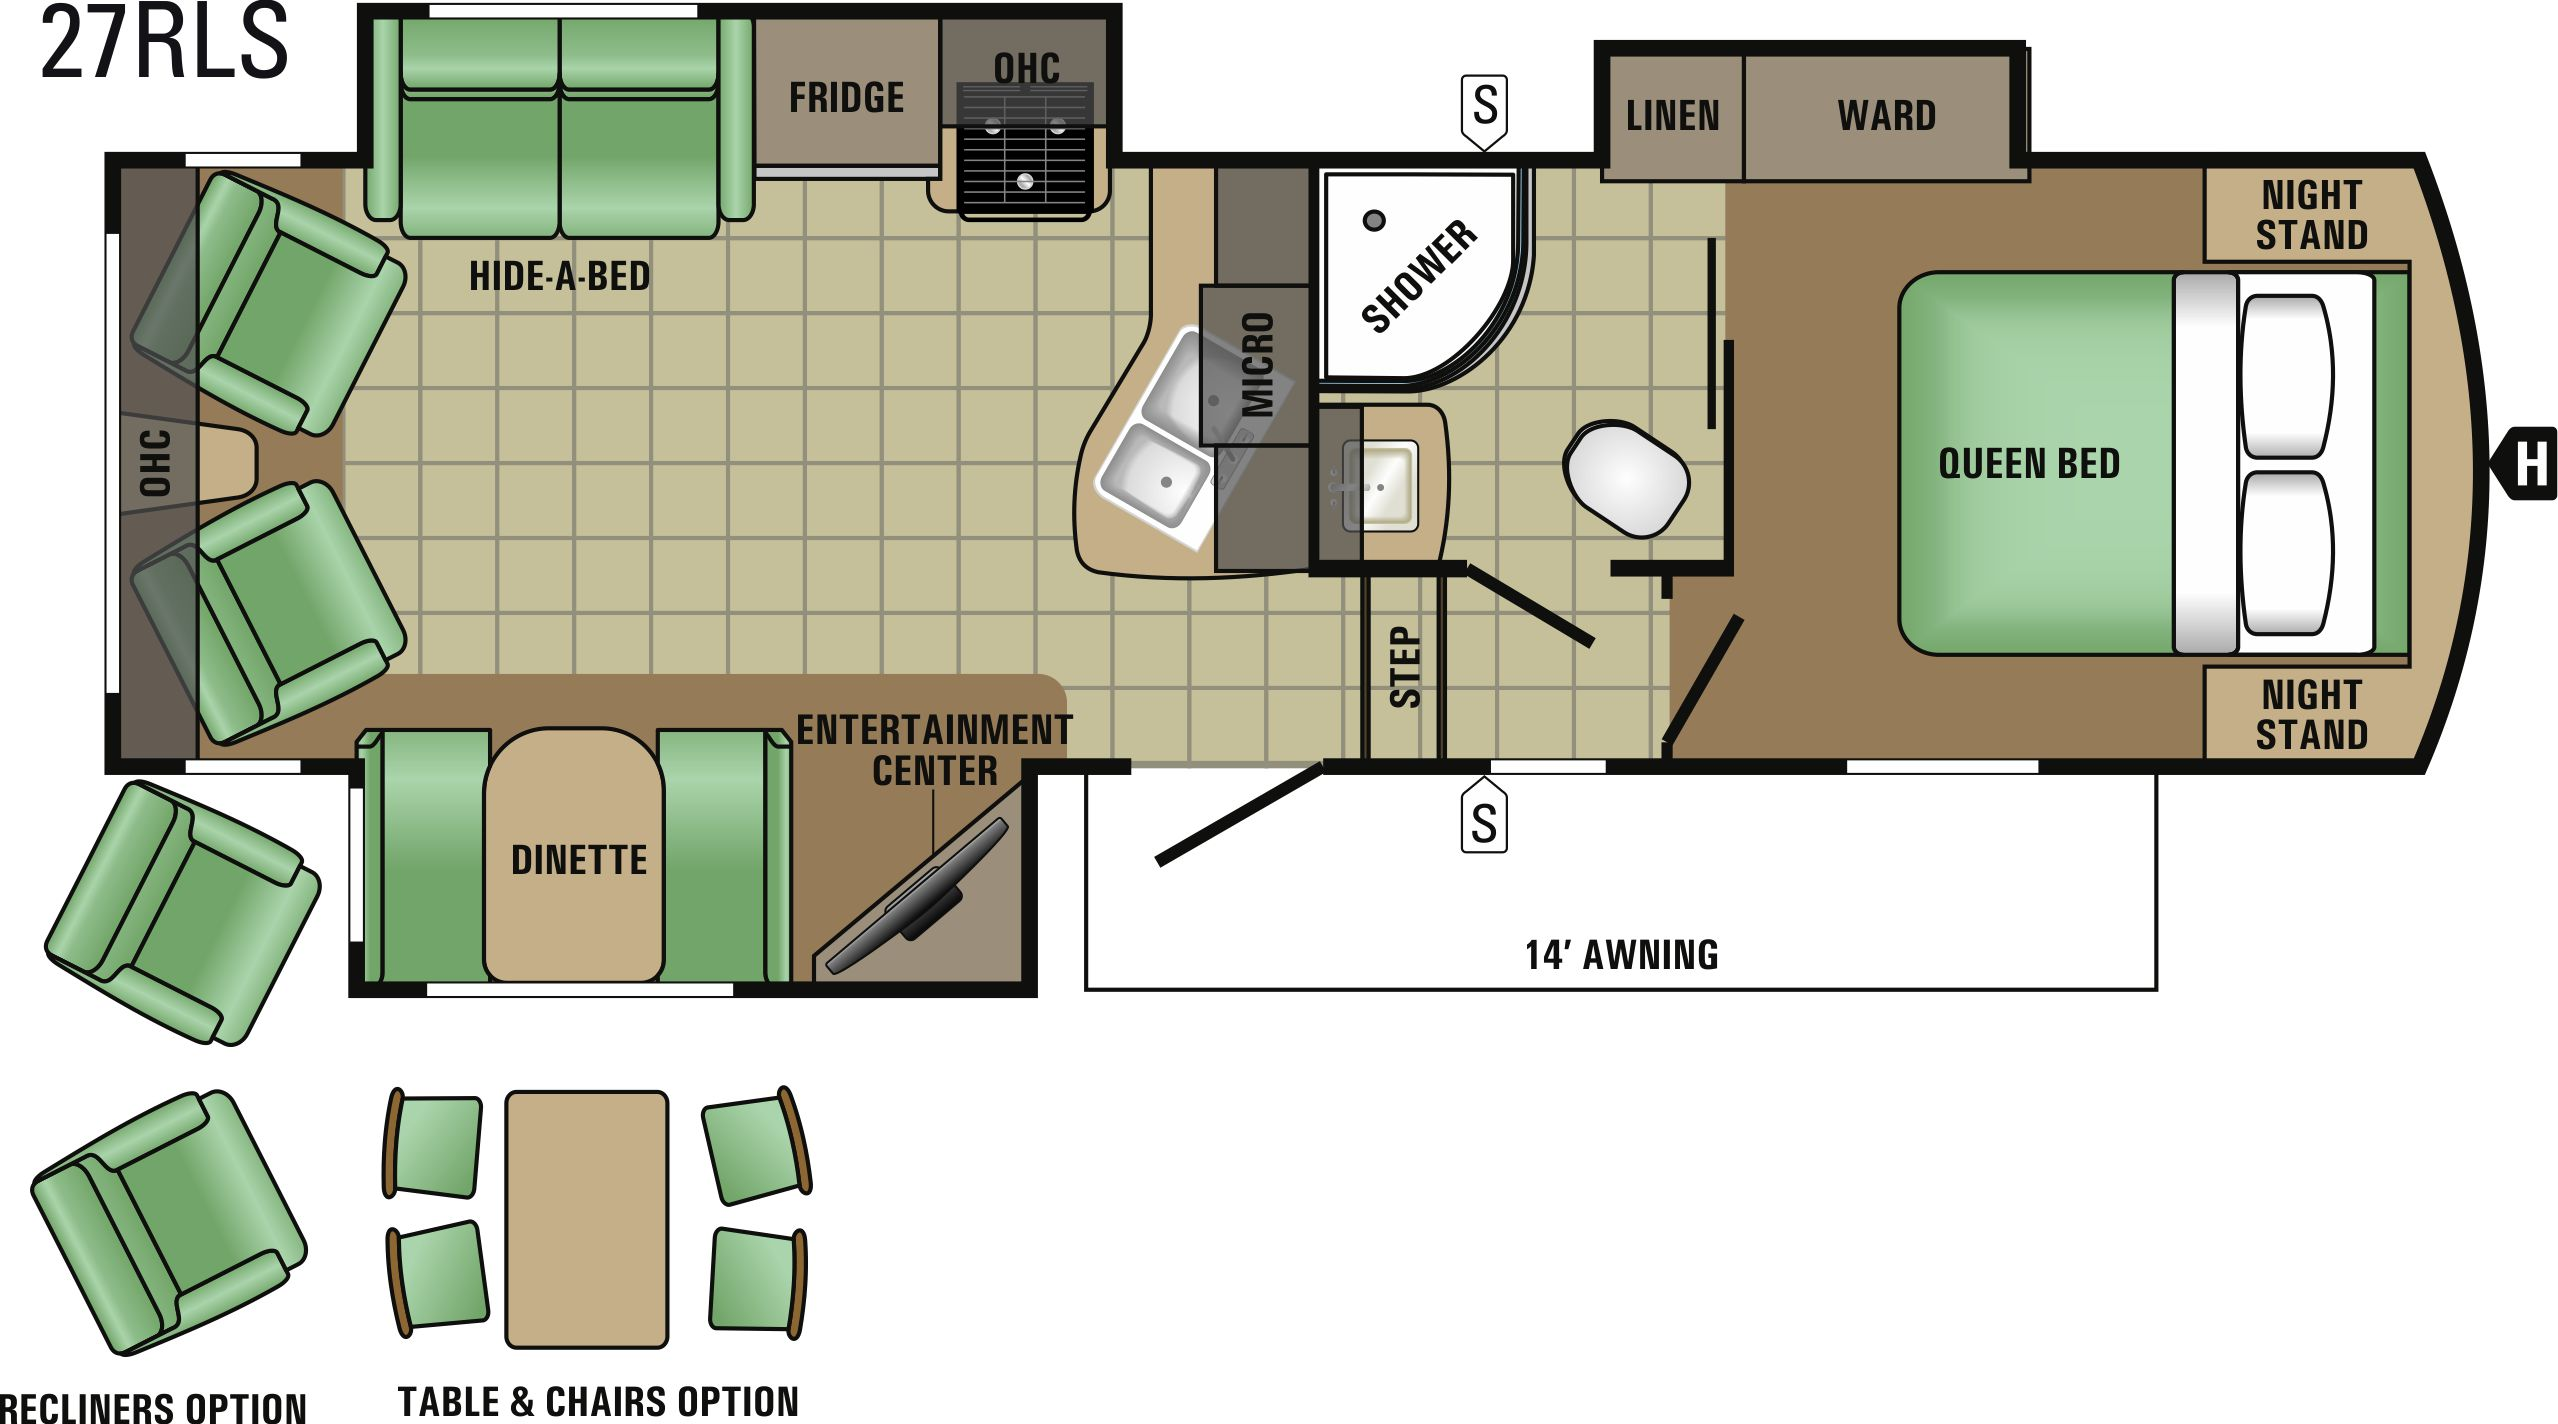 27RLS Floorplan